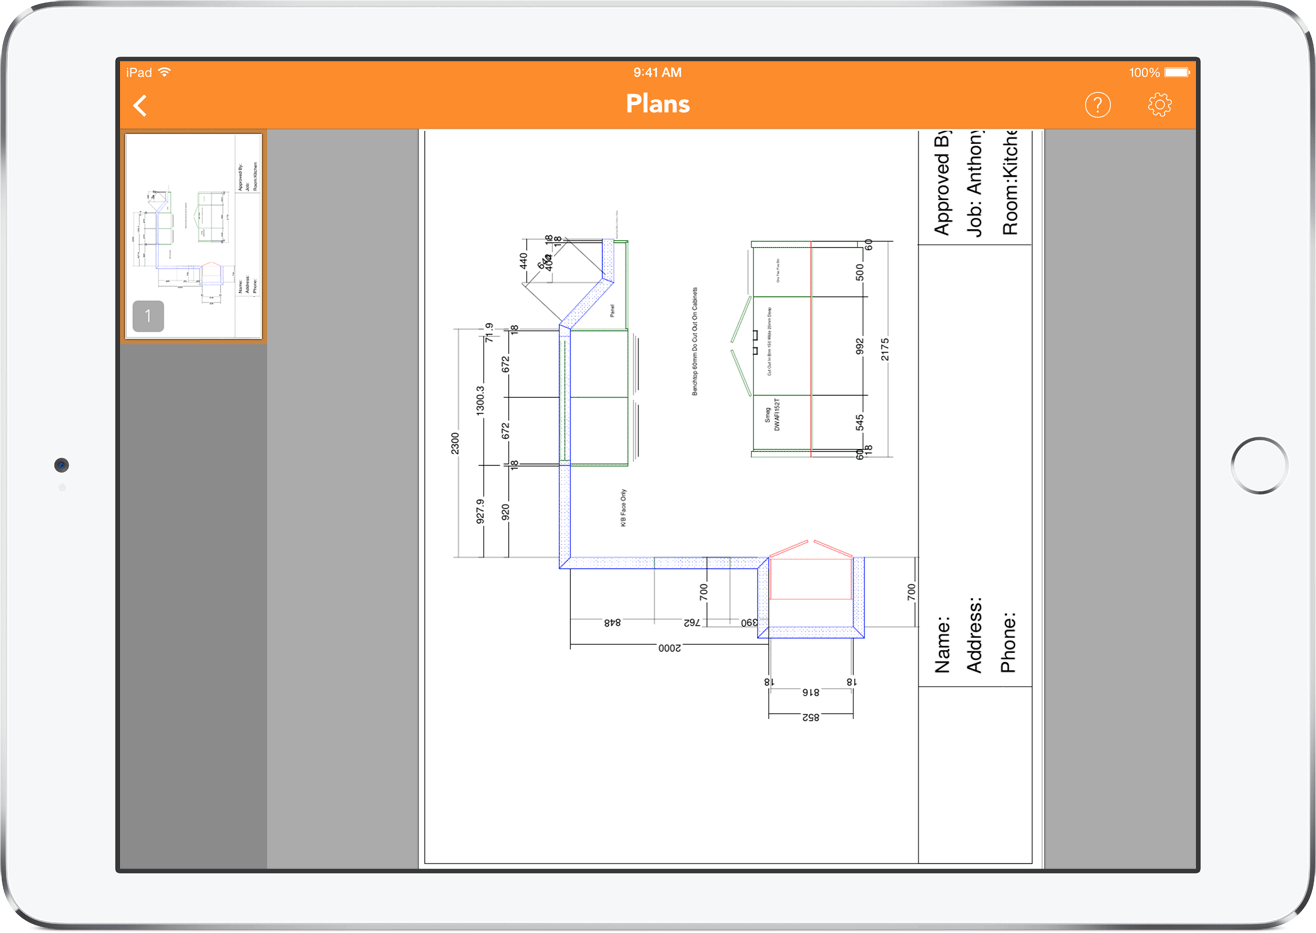 IKitchen Plans Screen View